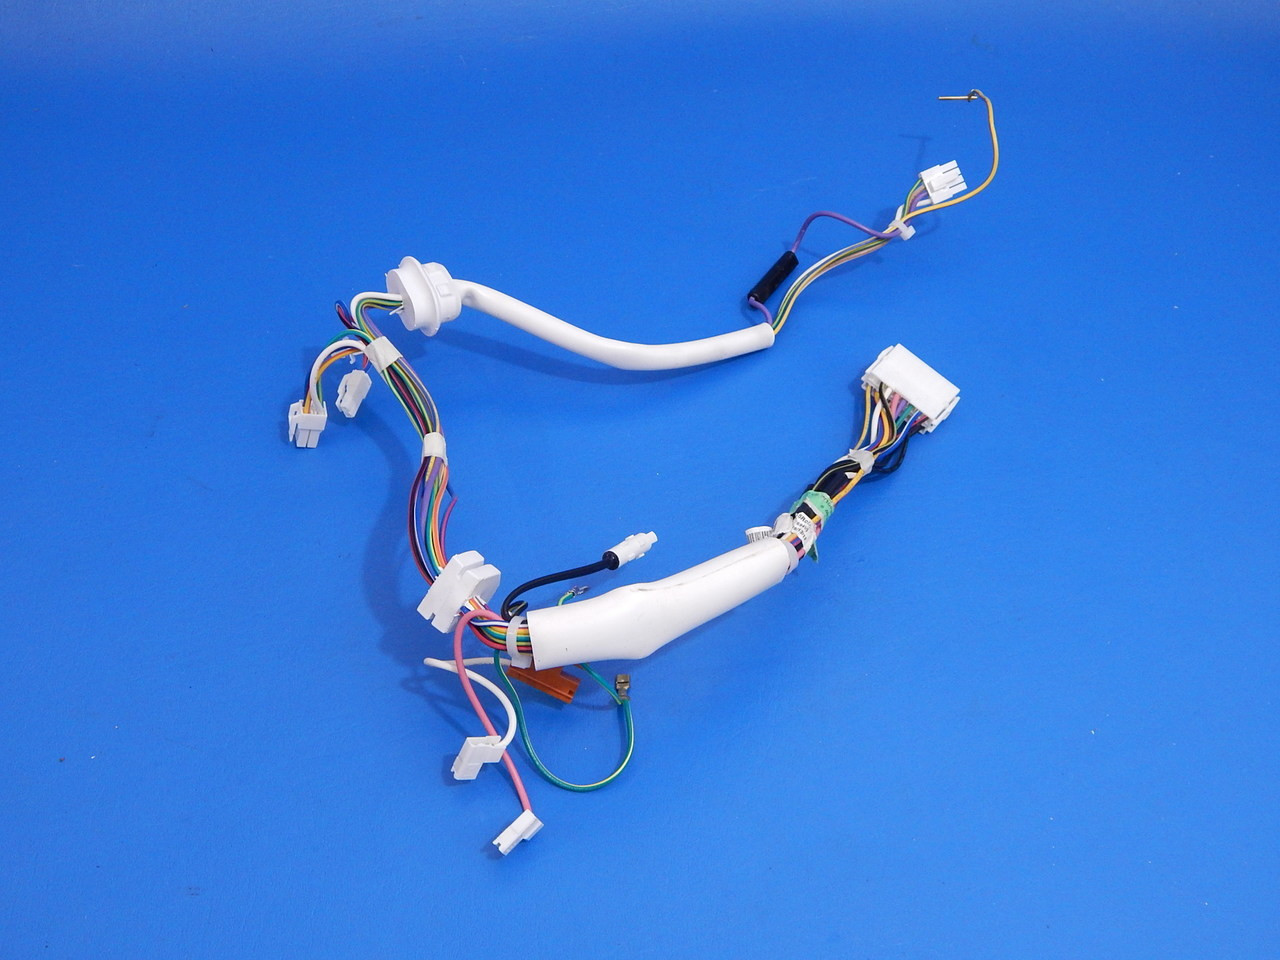 whirlpool bottom mount refrigerator gi6sarxxf05 ice maker wire harness  w10404016 - ice cold beer & appliance parts